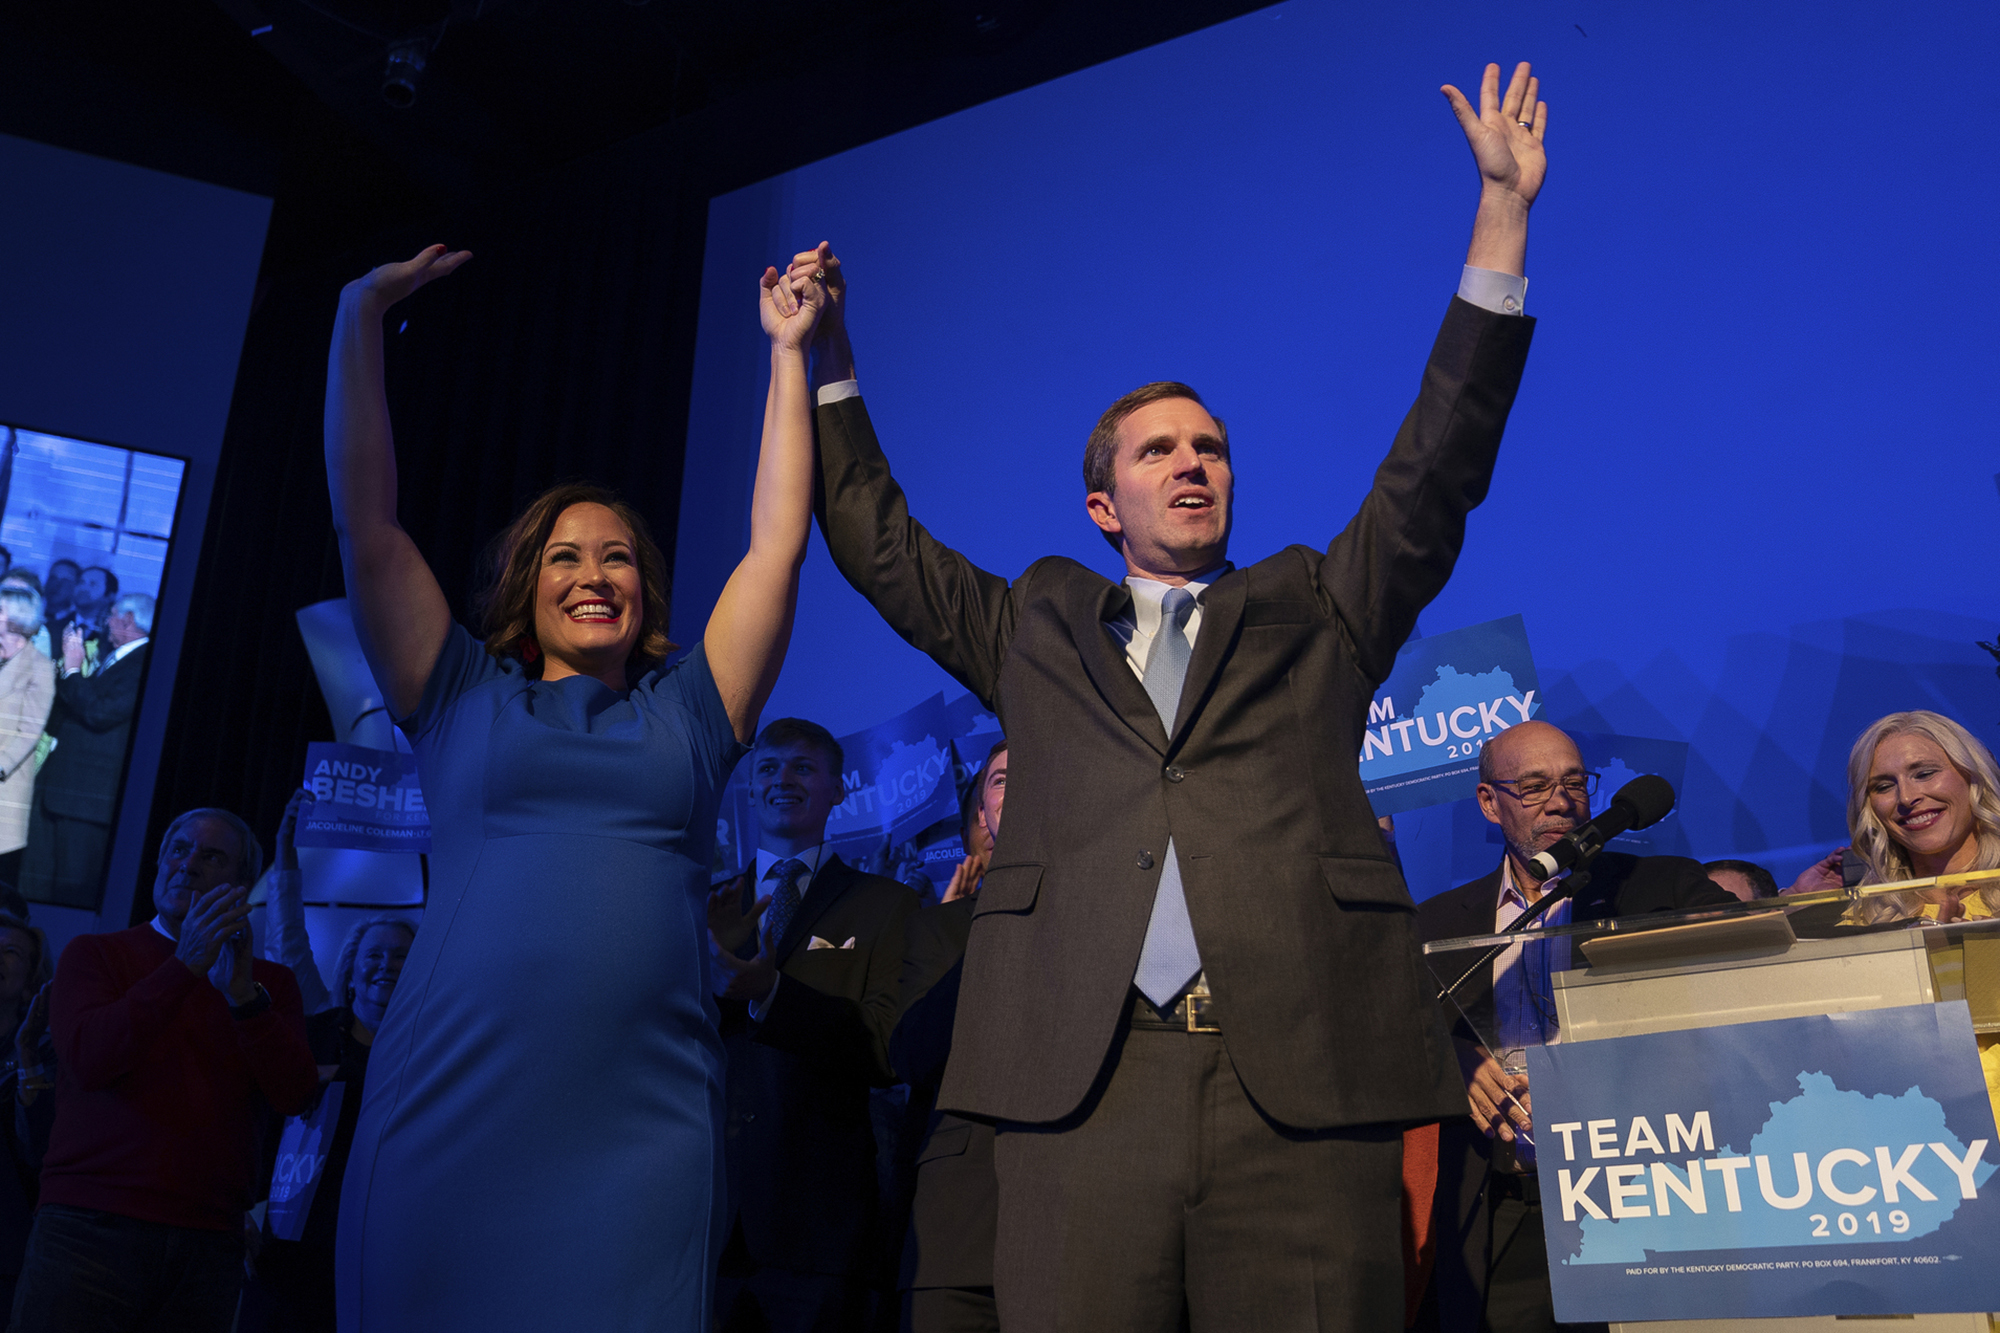 Kentucky election: Democrat Beshear claims victory, Republican Bevin refuses to concede